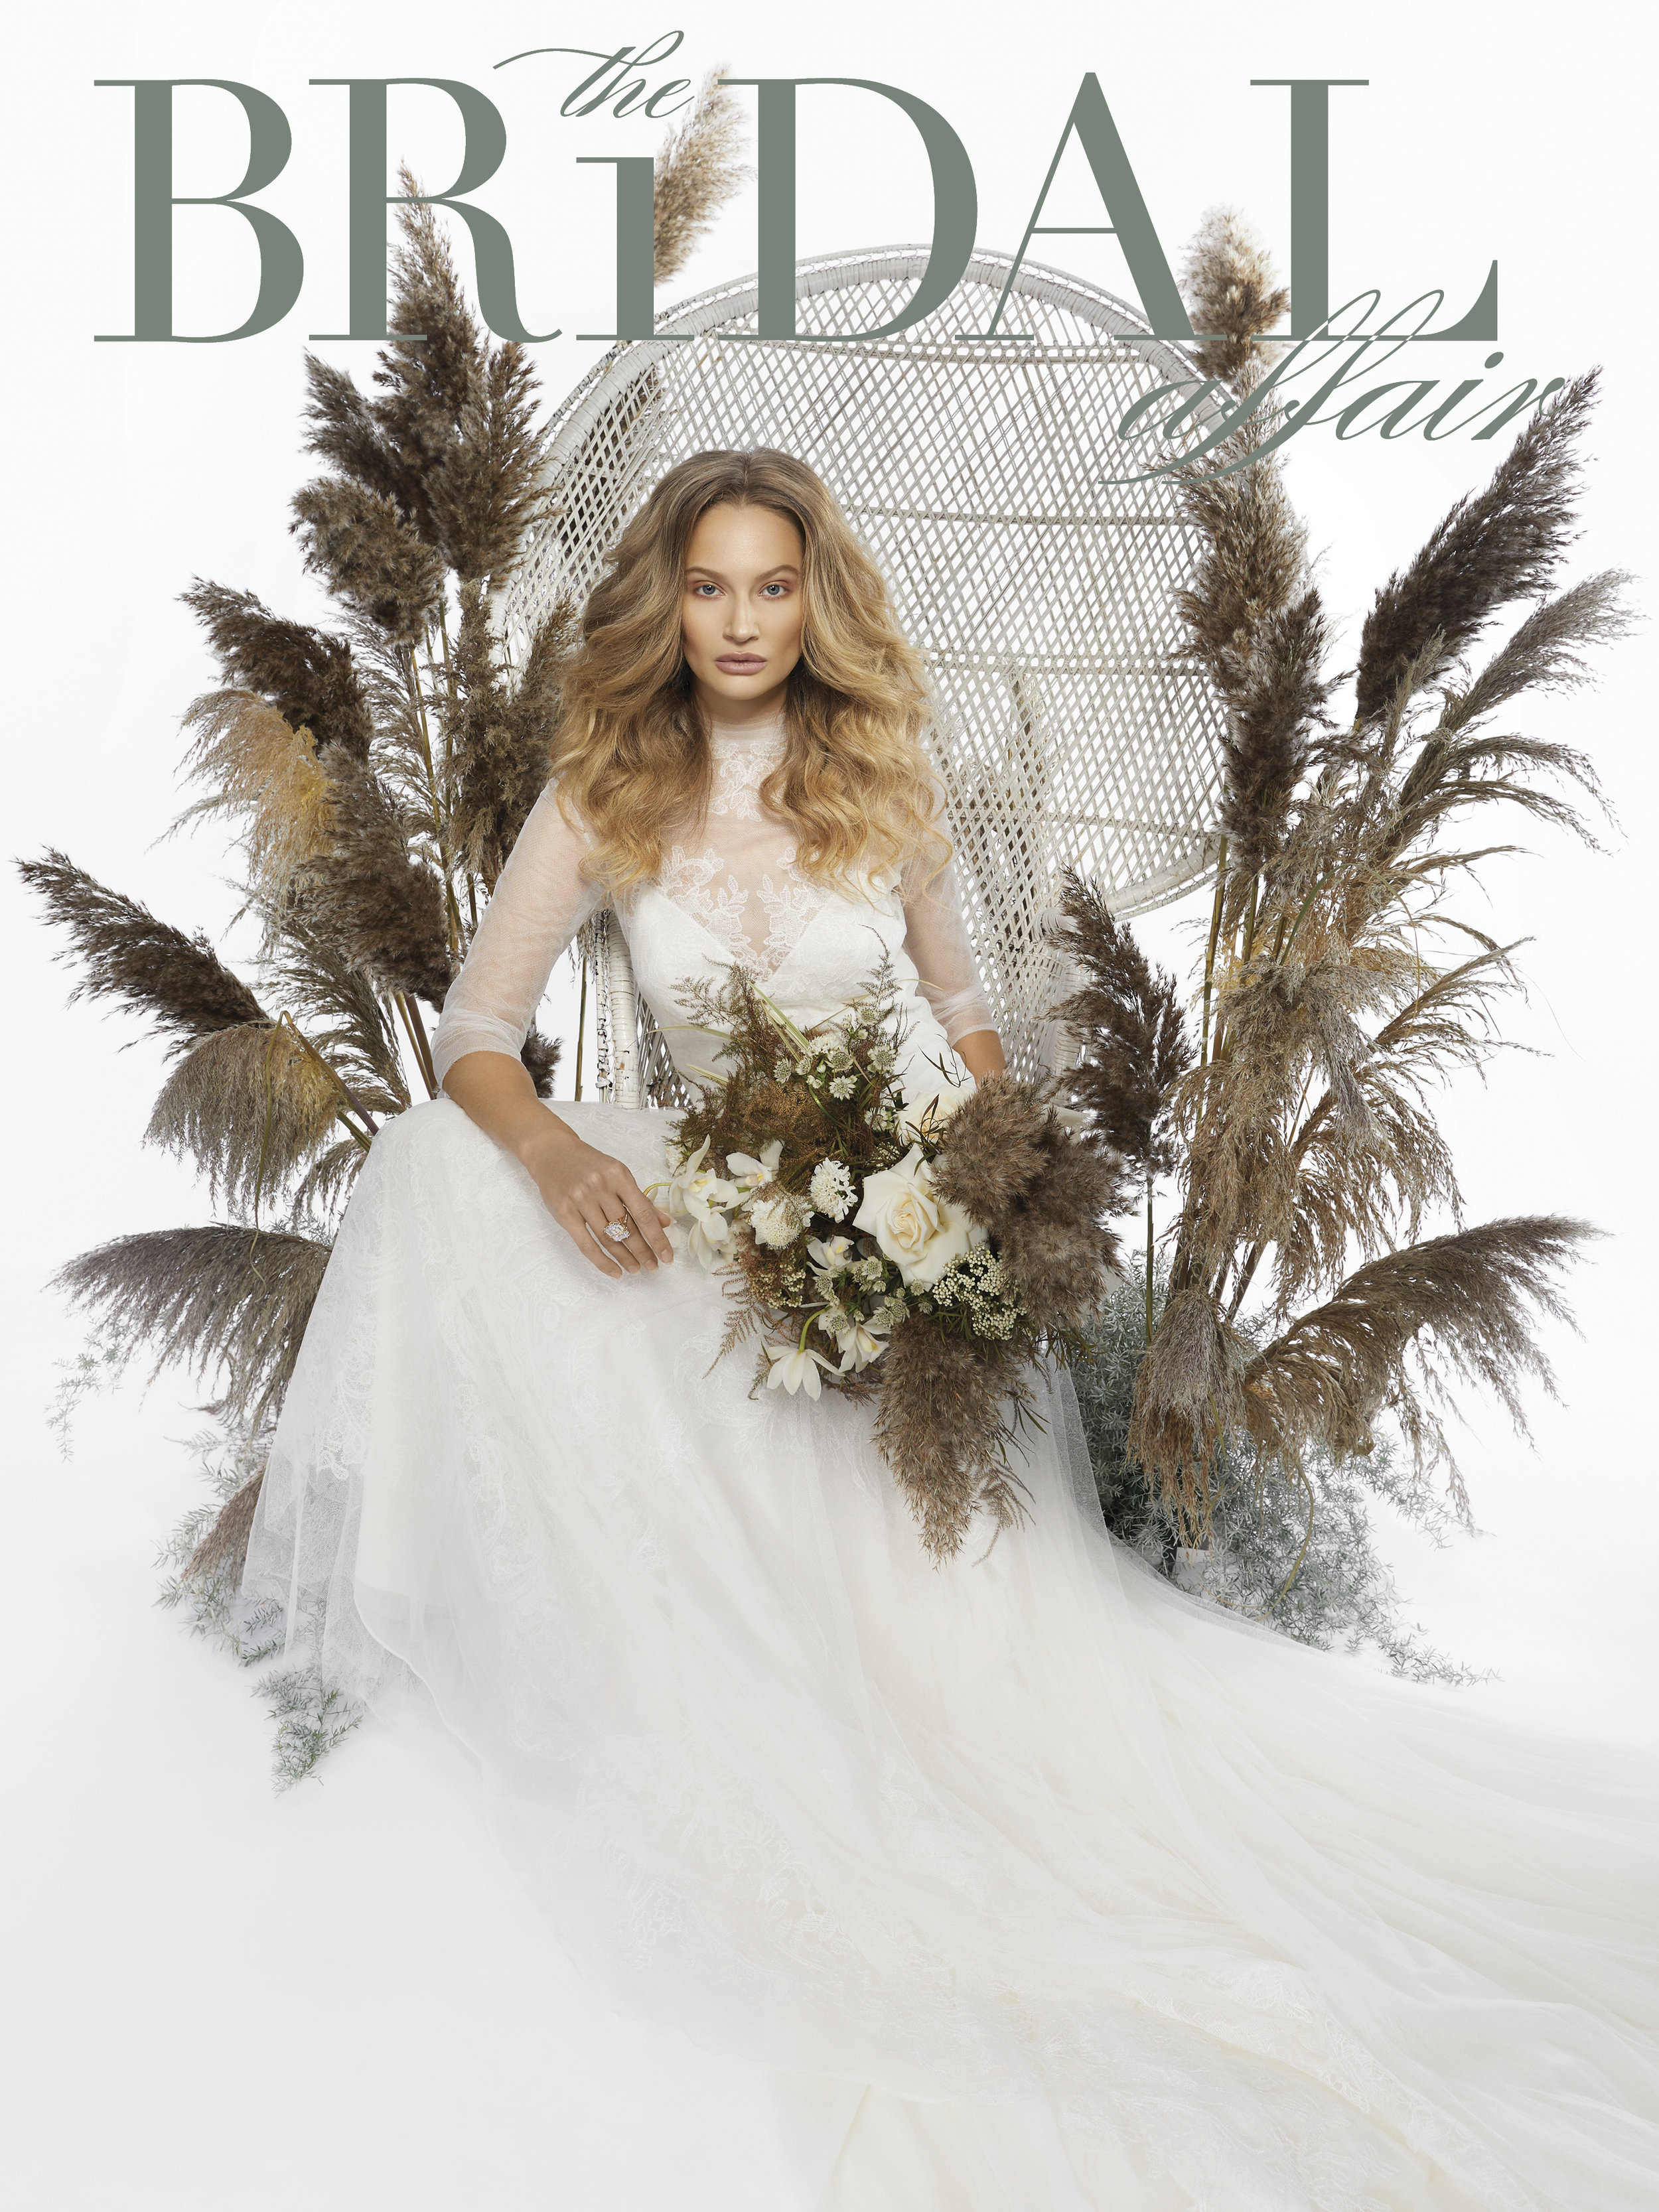 August In Bloom - The Bridal Affair Cover - Purely Poised (The Bridal Affair)